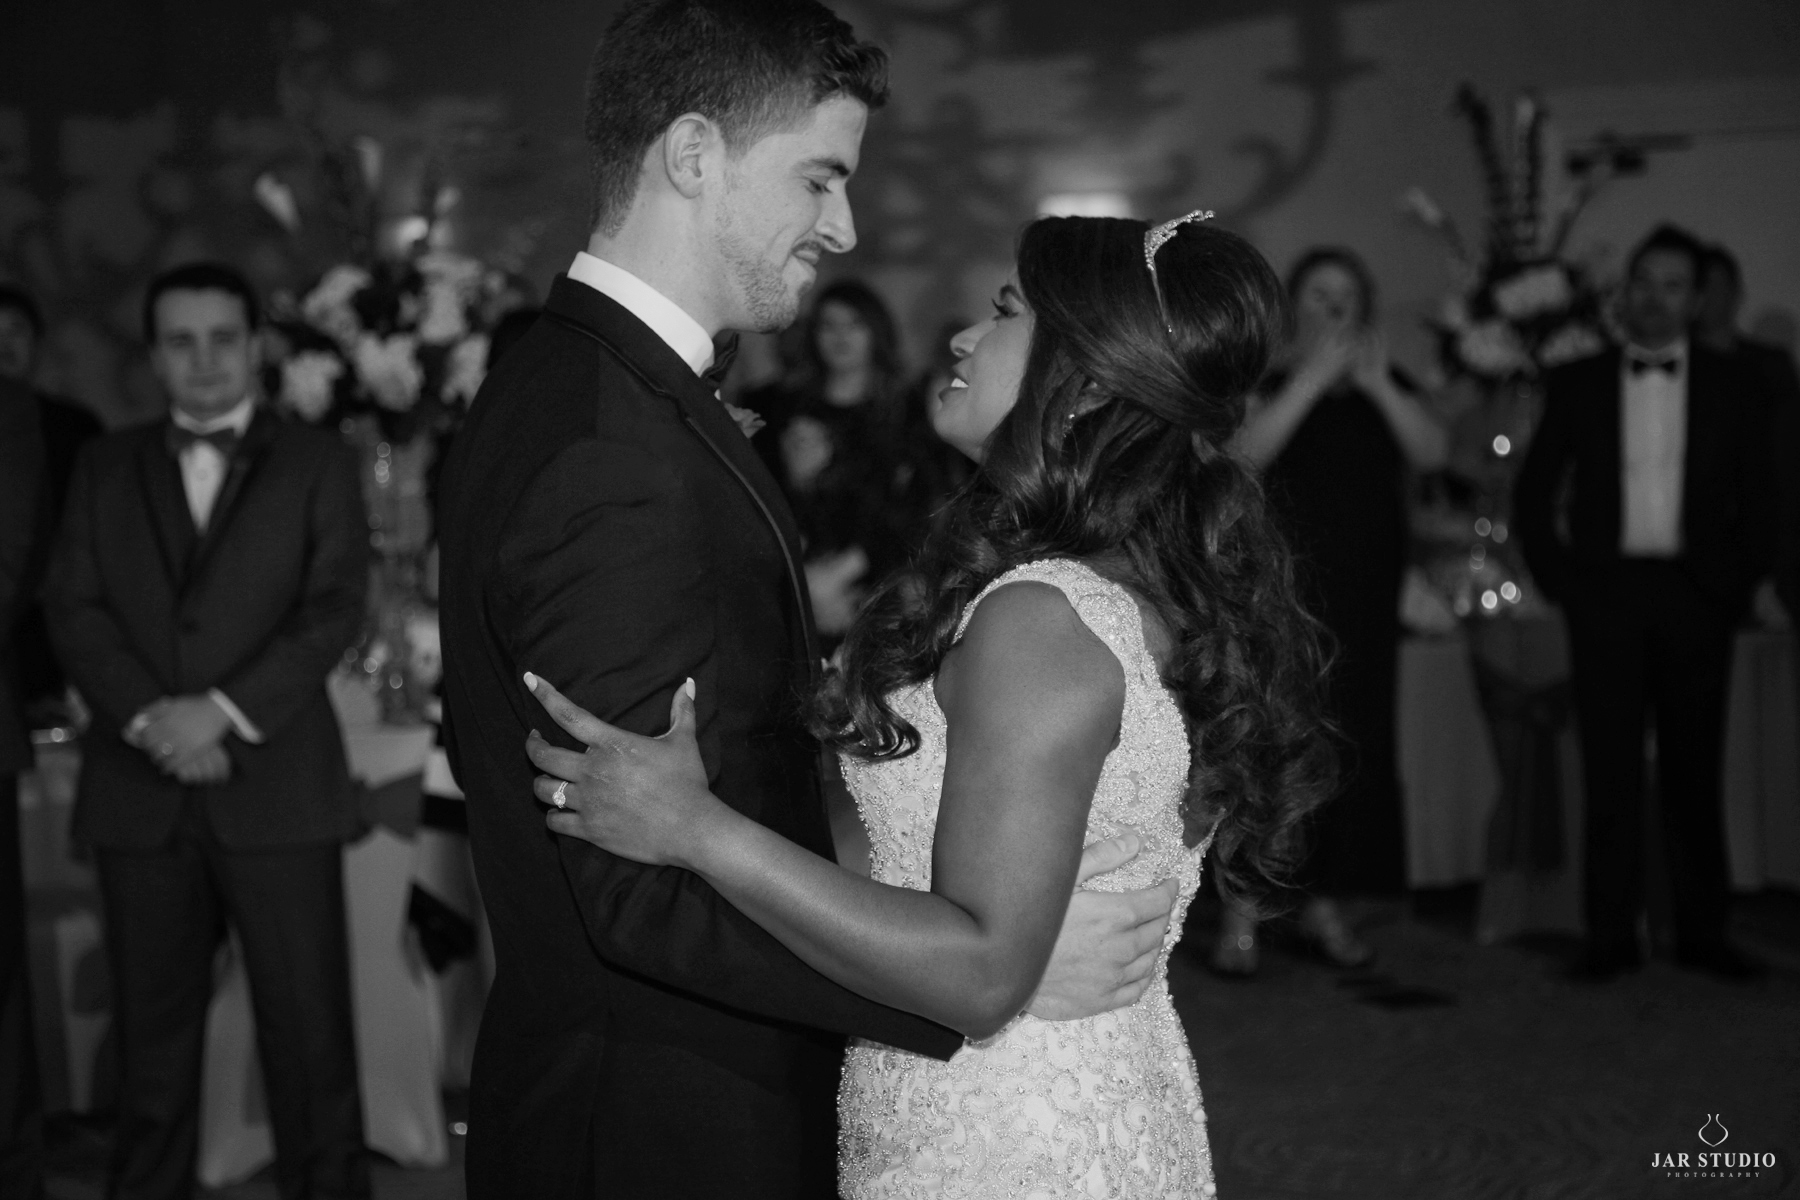 27-romantic-reception-orlando-fl-jarstudio-photography.JPG